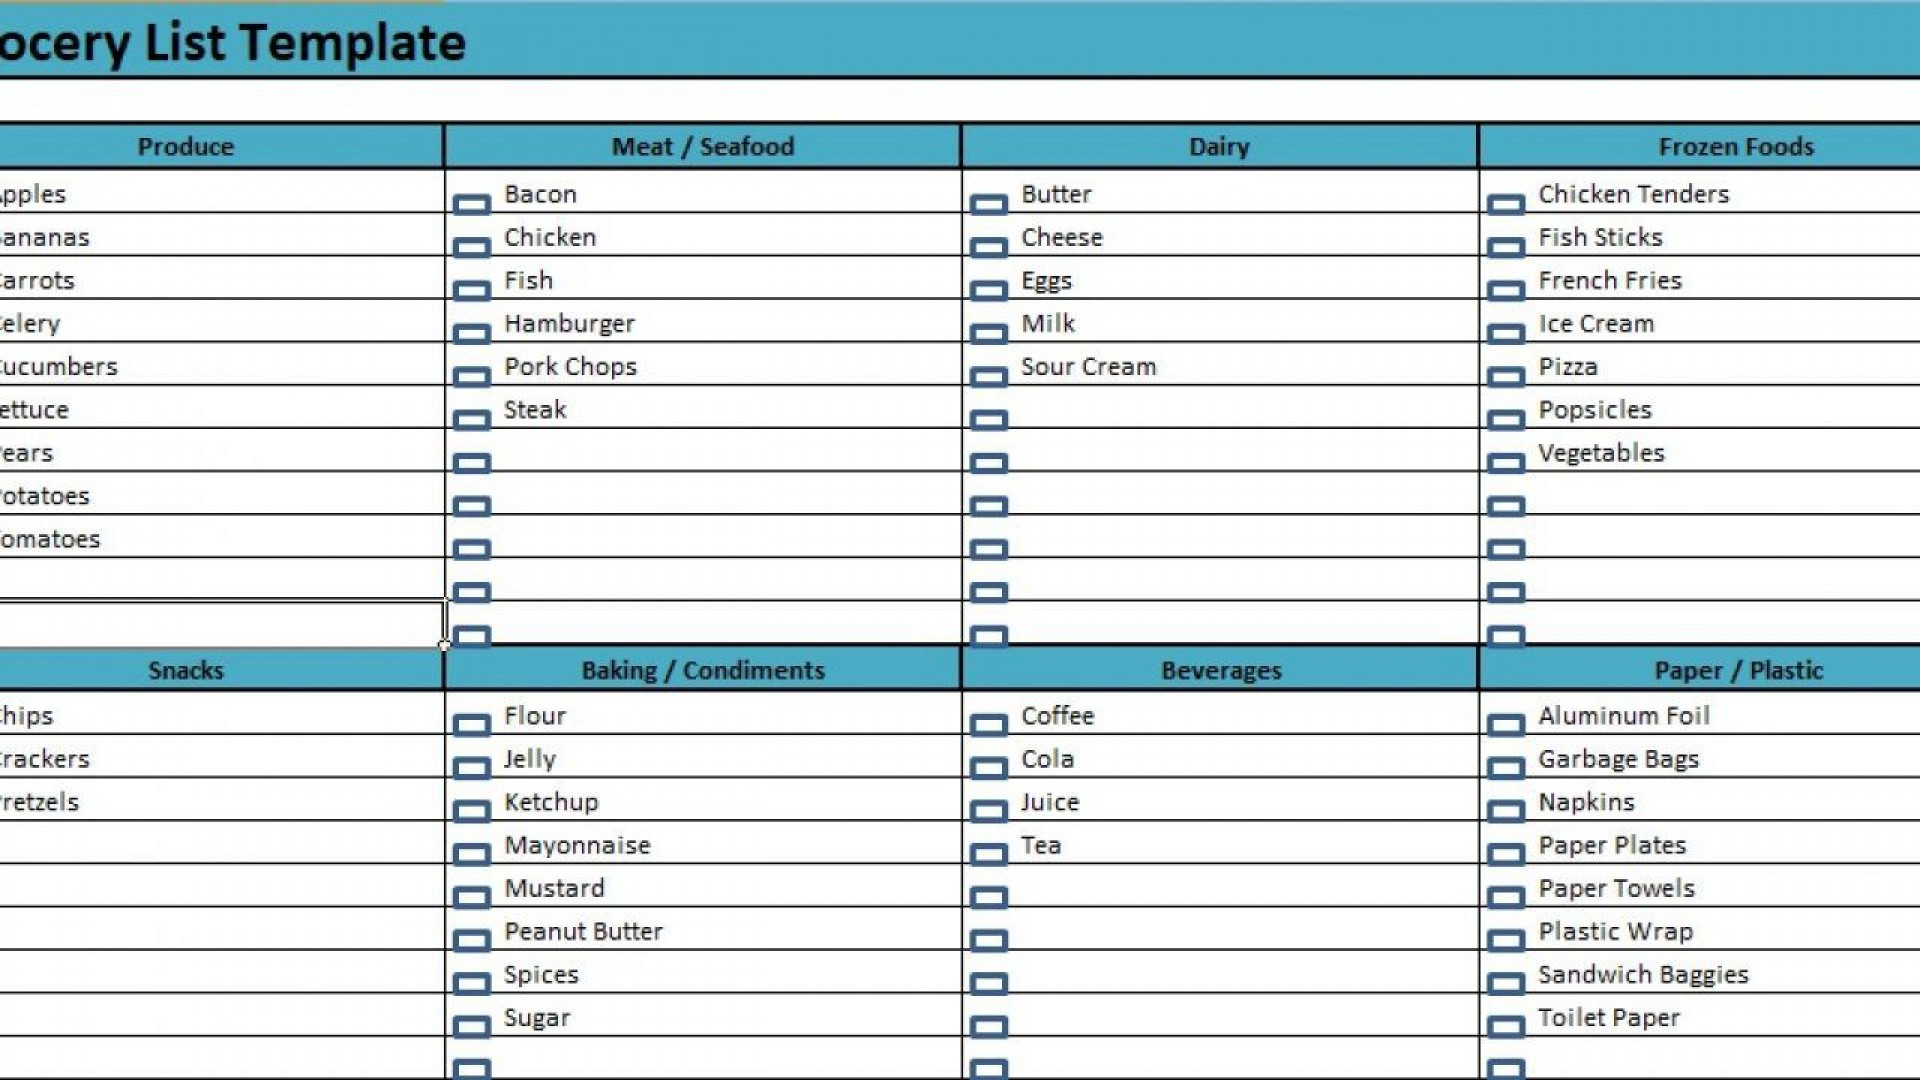 008 Unbelievable Grocery List Template Excel Free Download High Definition 1920